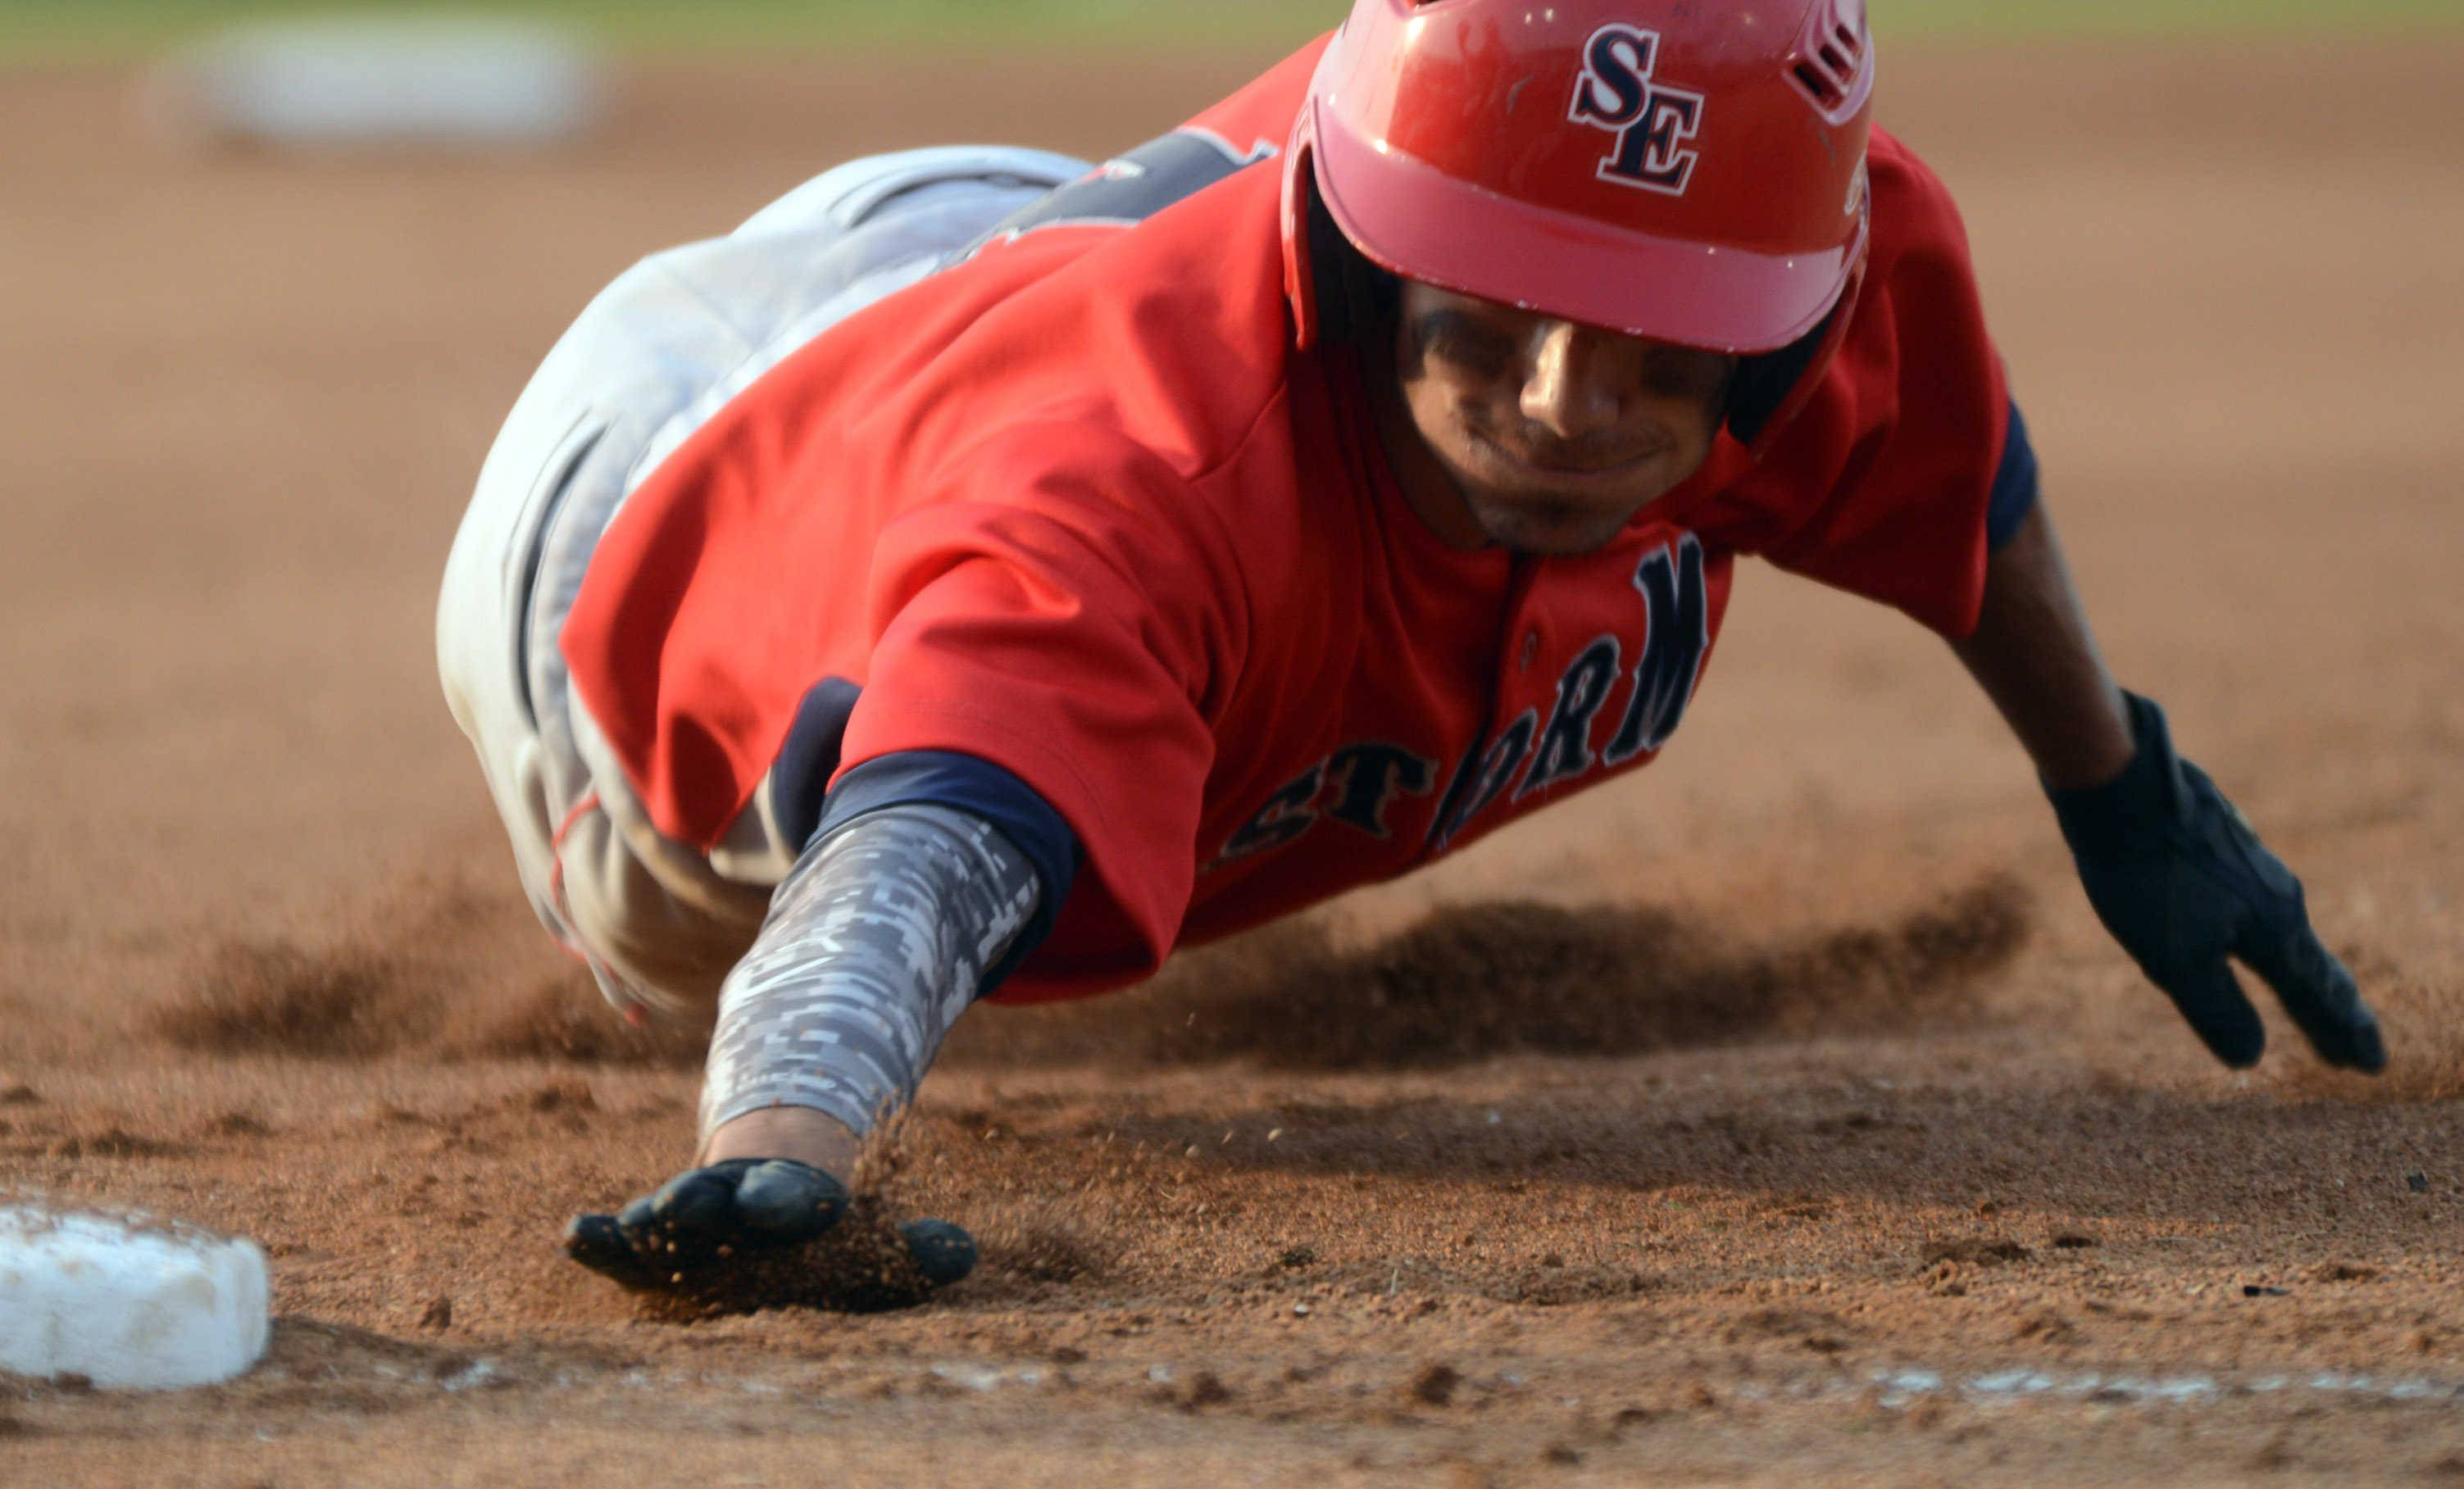 South Elgin's Dane Toppel dives back to first base safely during the Class 4A supersectional at Boomers Stadium in Schaumburg on Monday night..